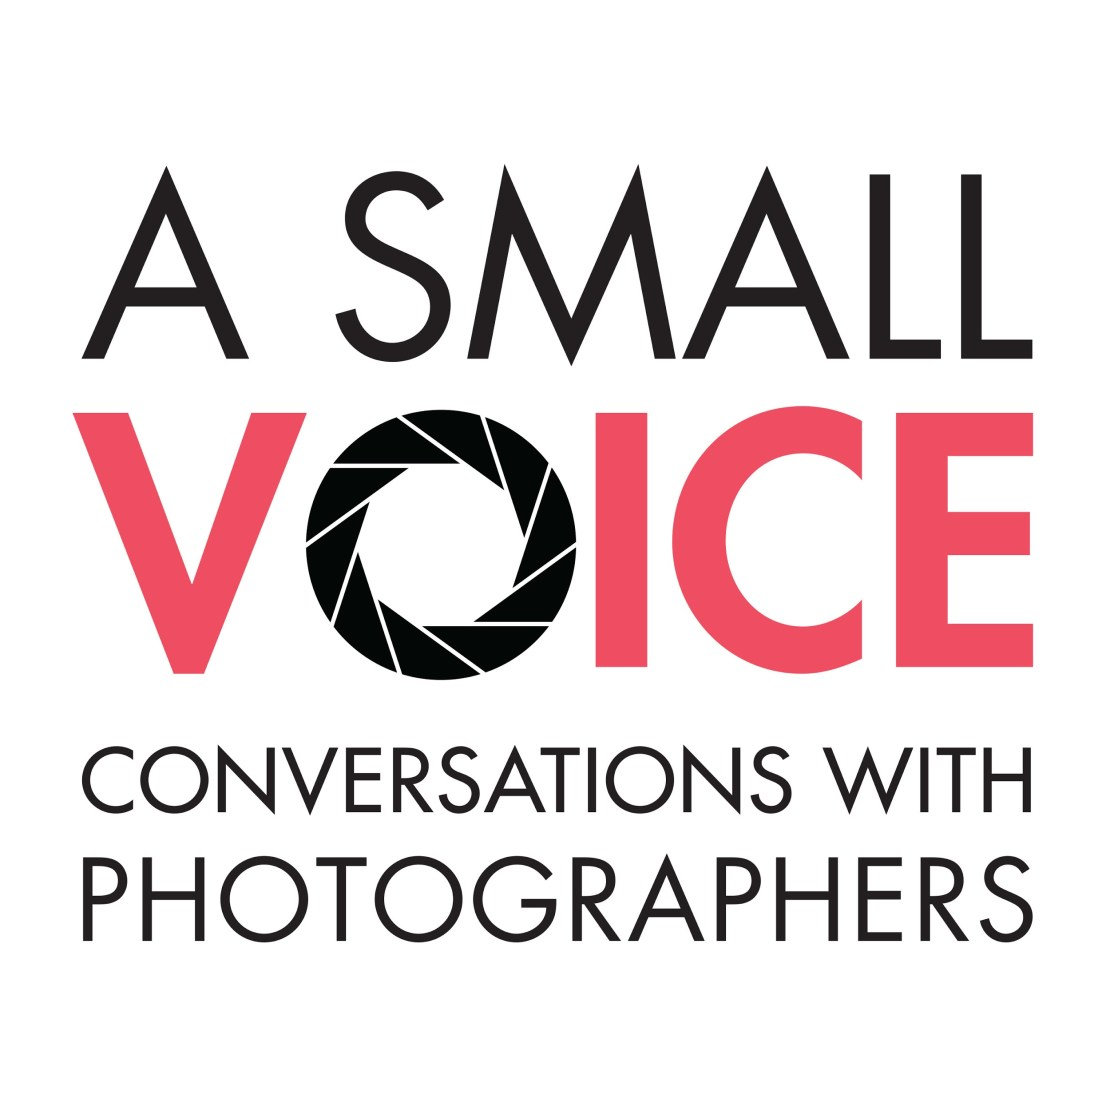 A small voice photography podcast logo